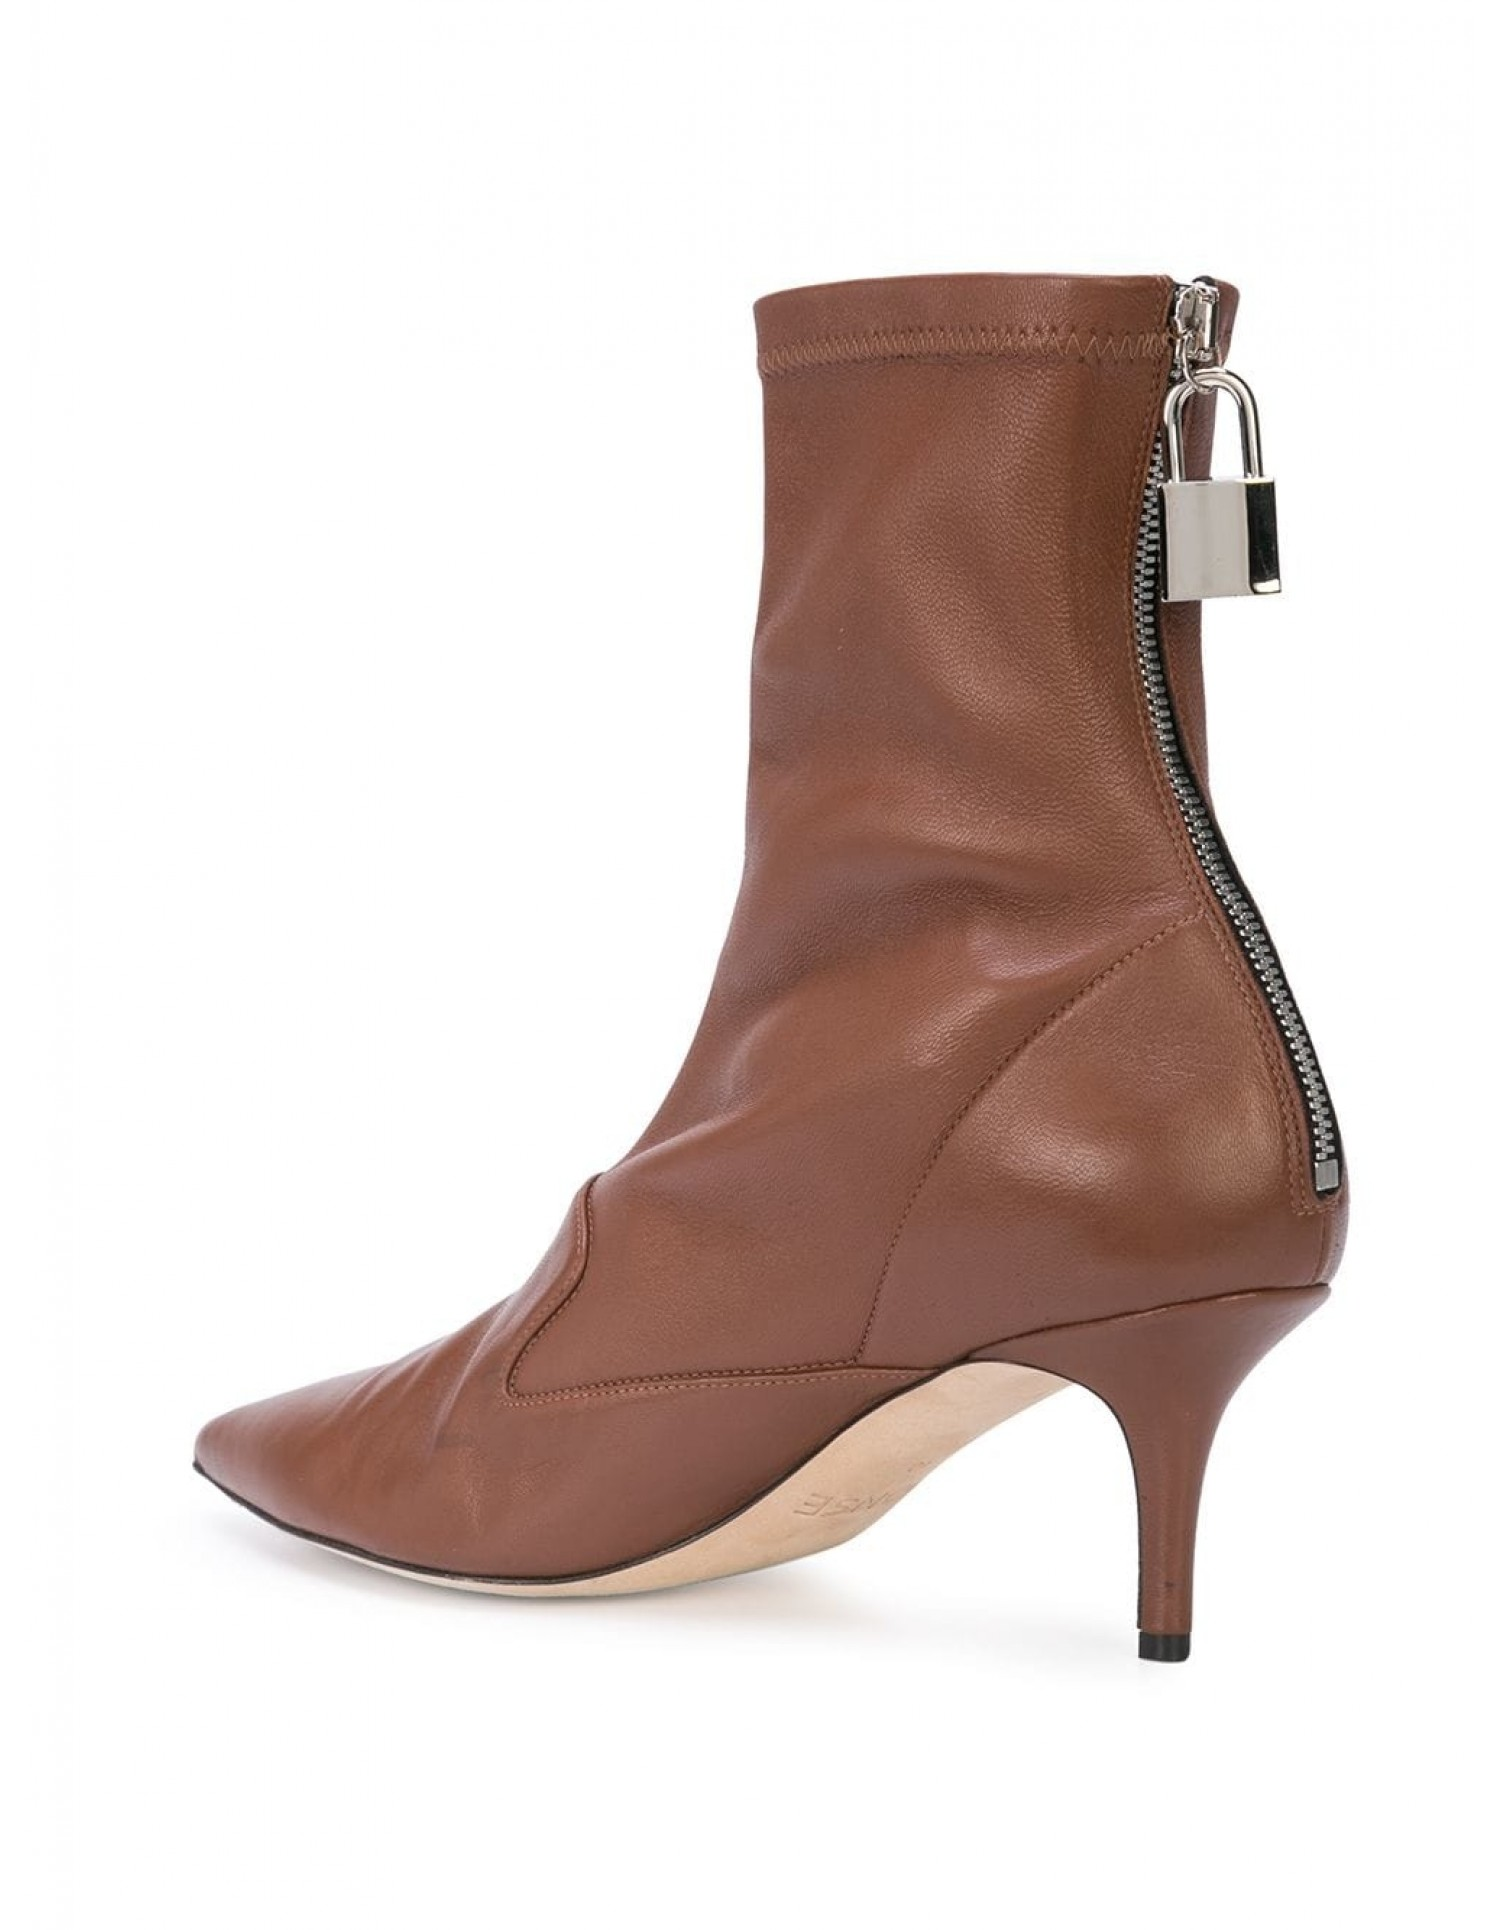 Monse Women's Brown Leather Lock Bootie Angled View